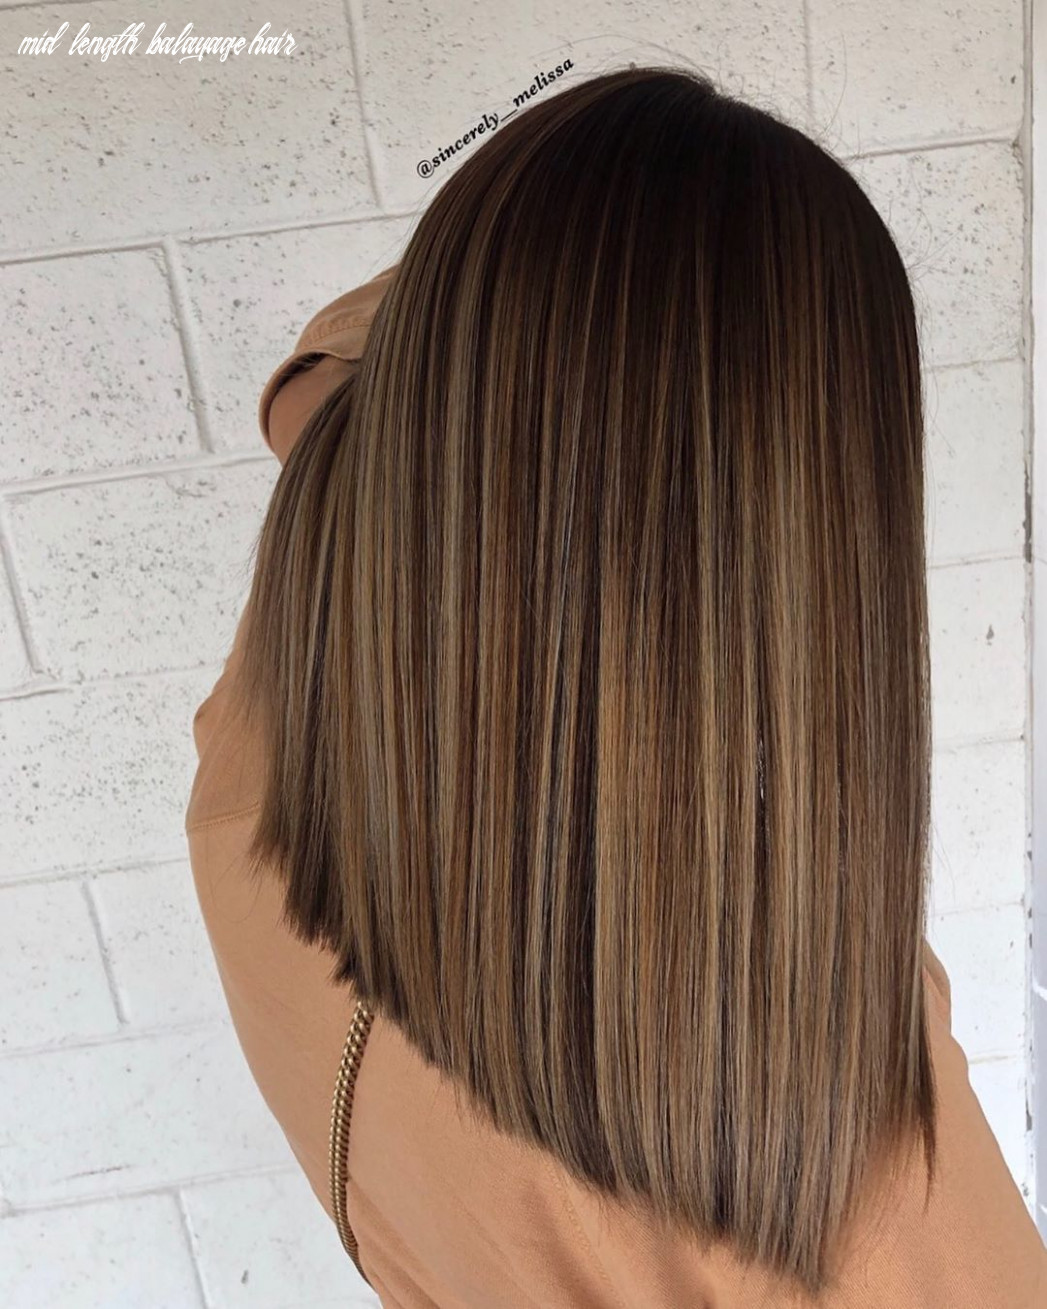 12 Best Brown Balayage Hair Colours for 12 | All Things Hair UK